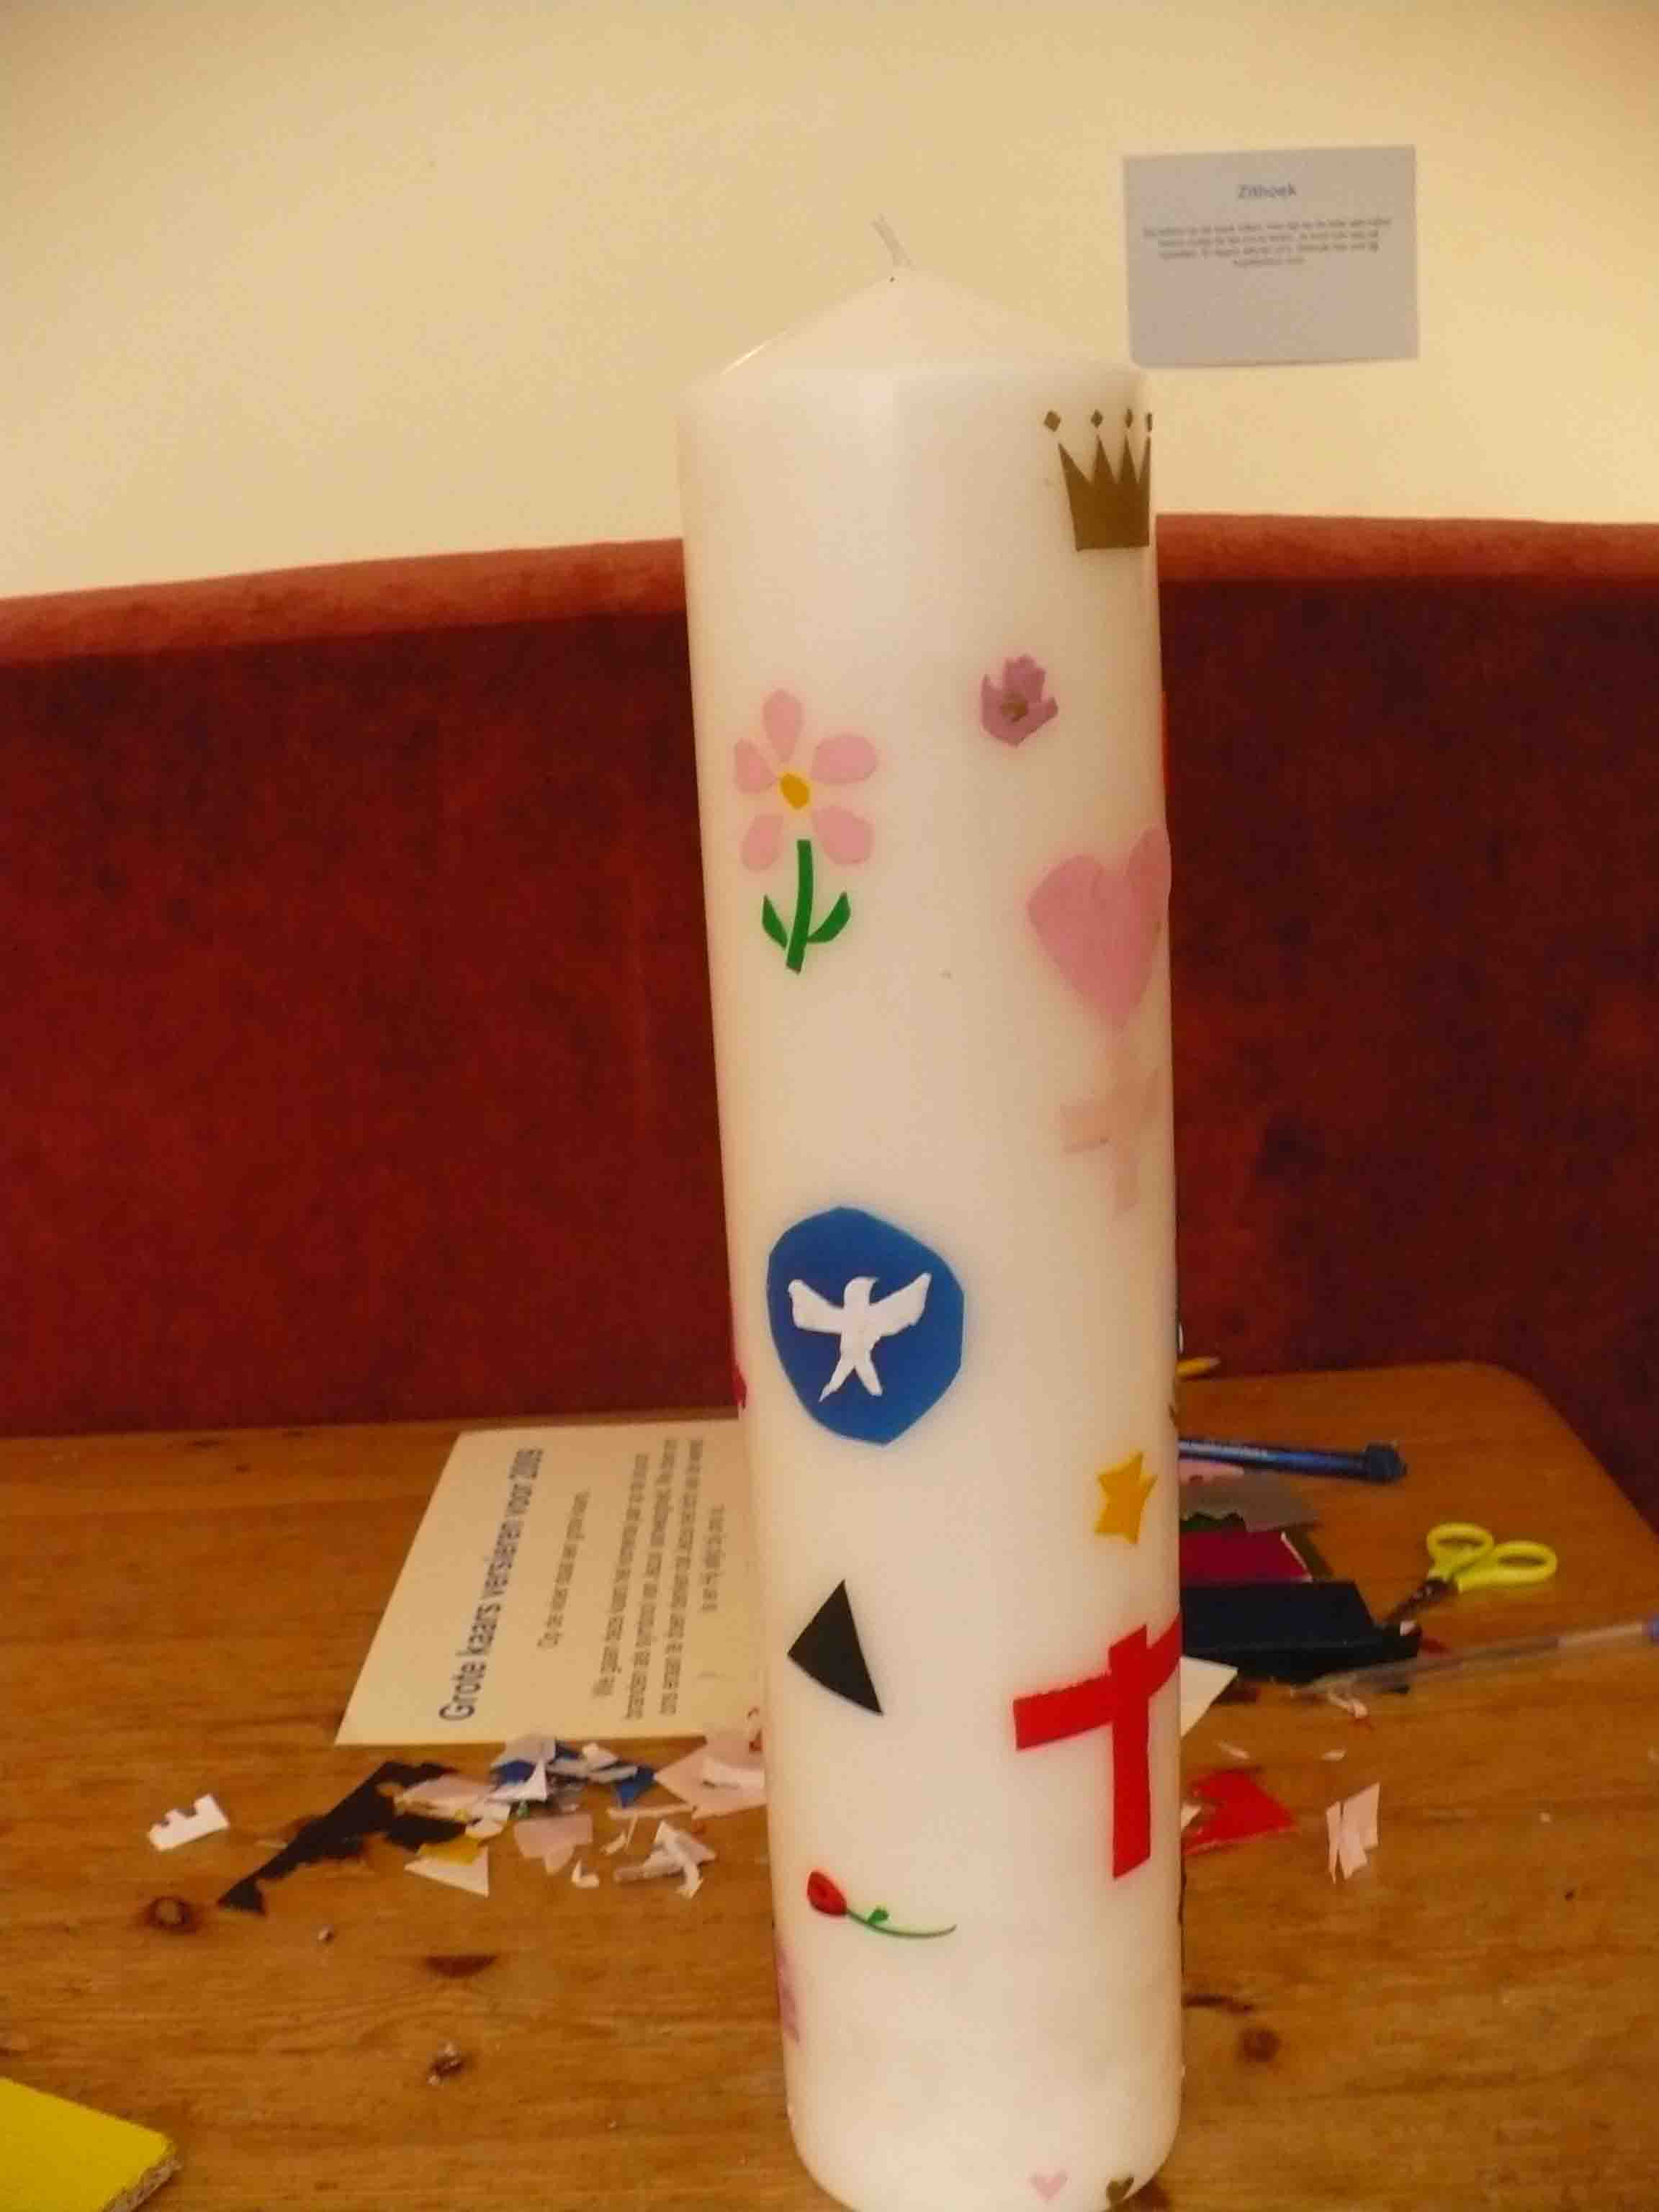 Decorate candle as creative prayer idea in sunday school class